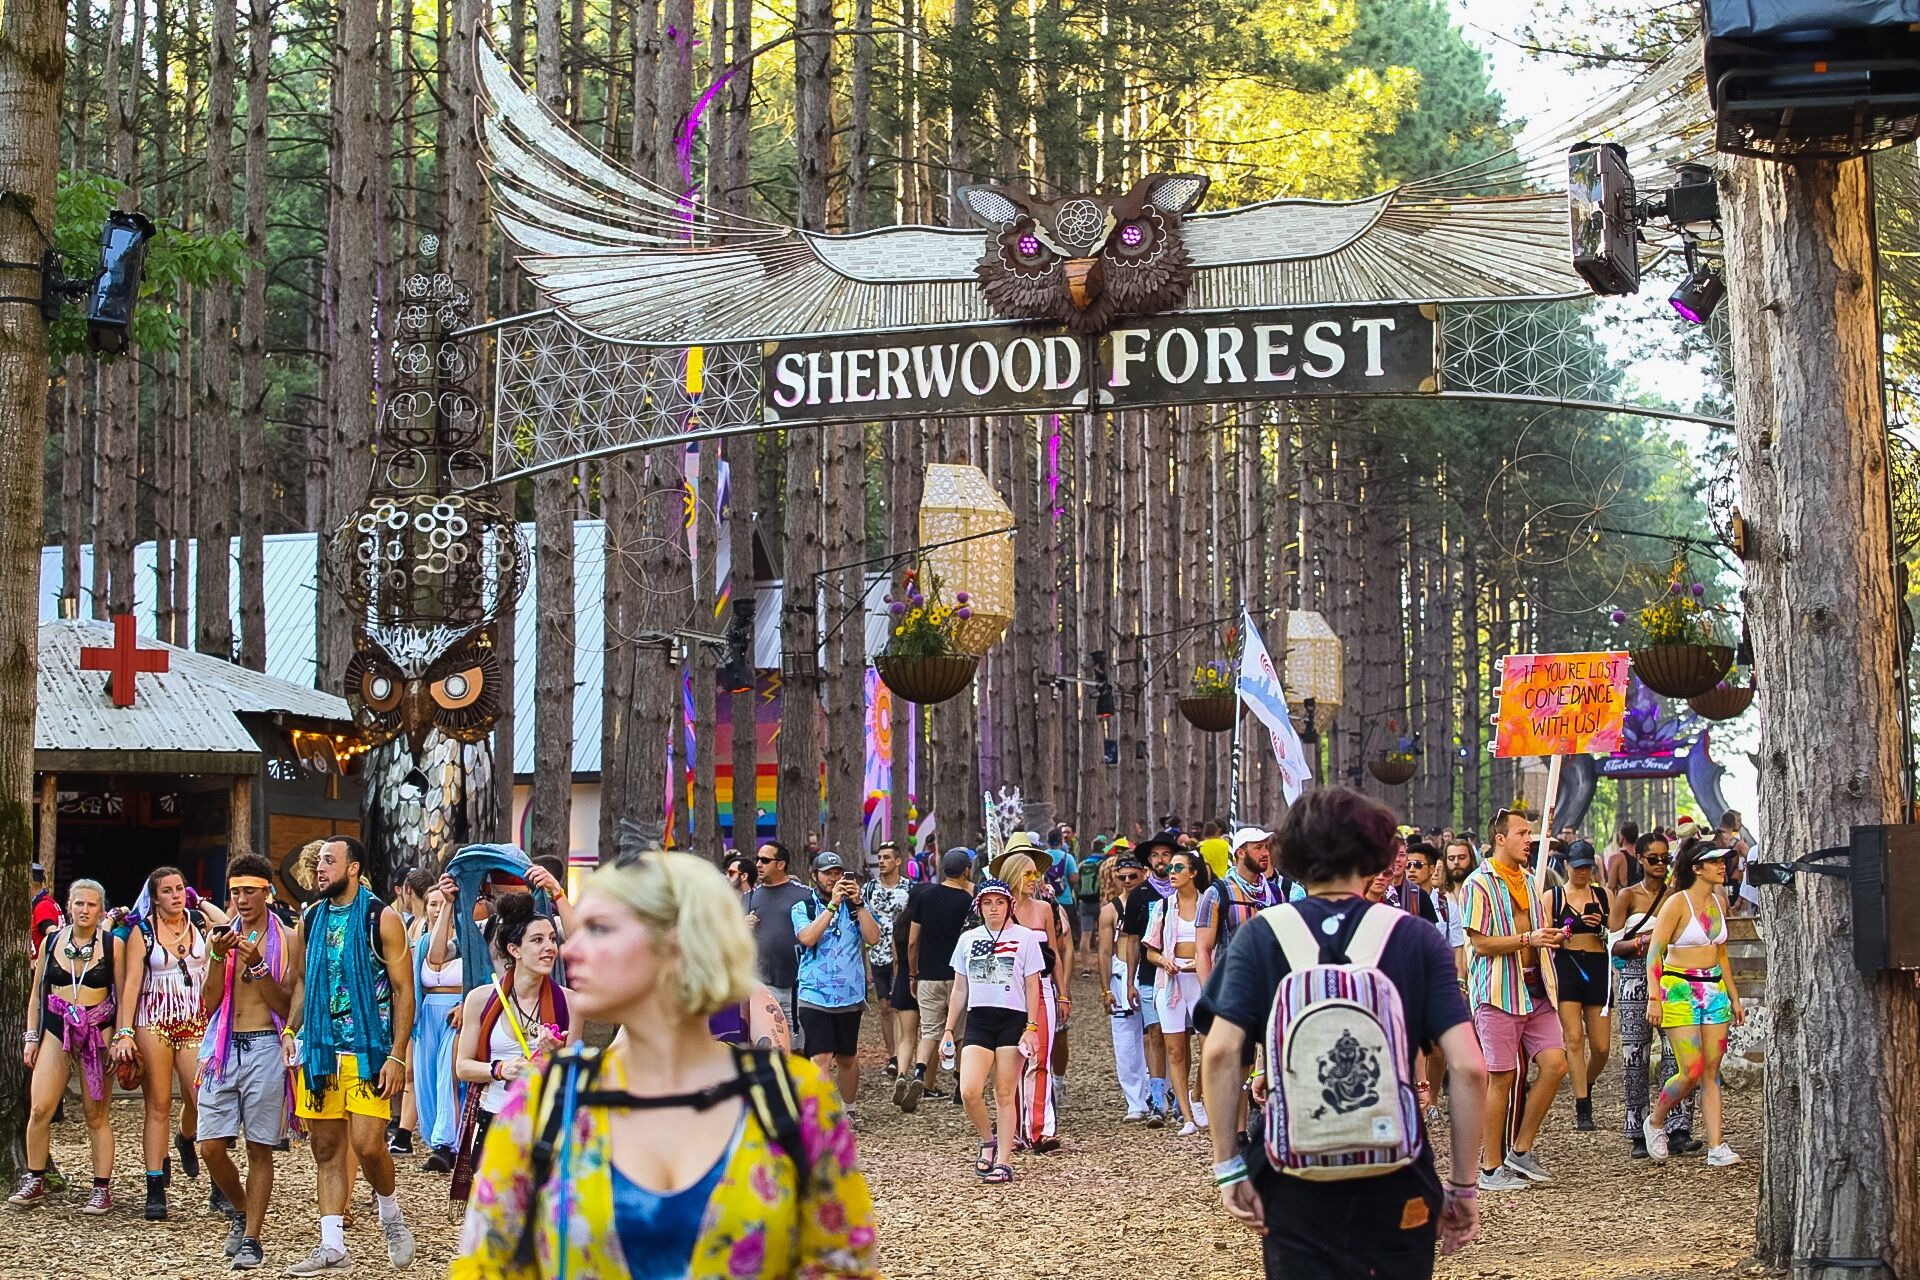 REVIEW: Electric Forest provides another stunning year in 2019